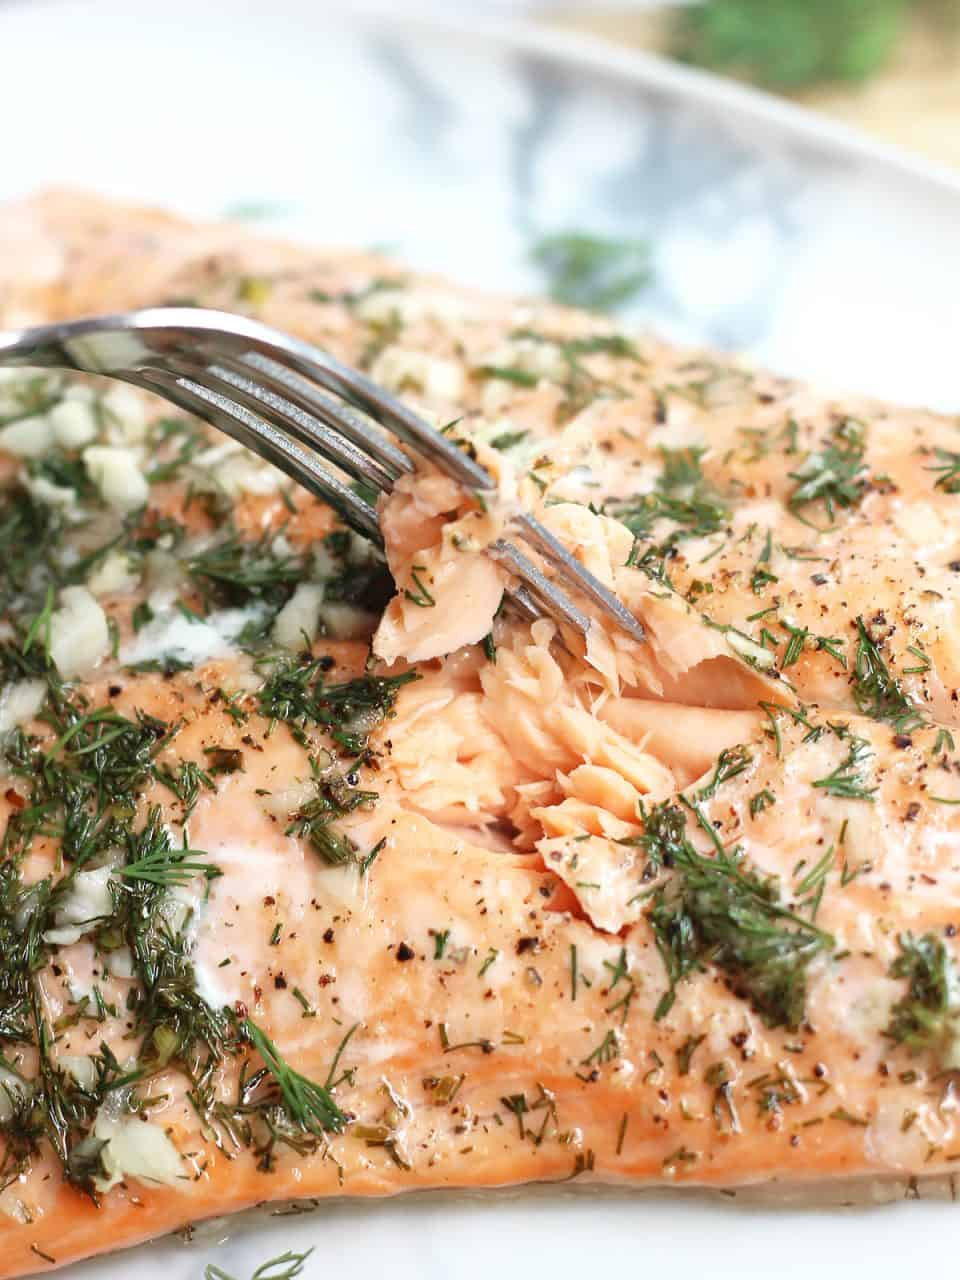 A fork flaking the flesh of the baked salmon.